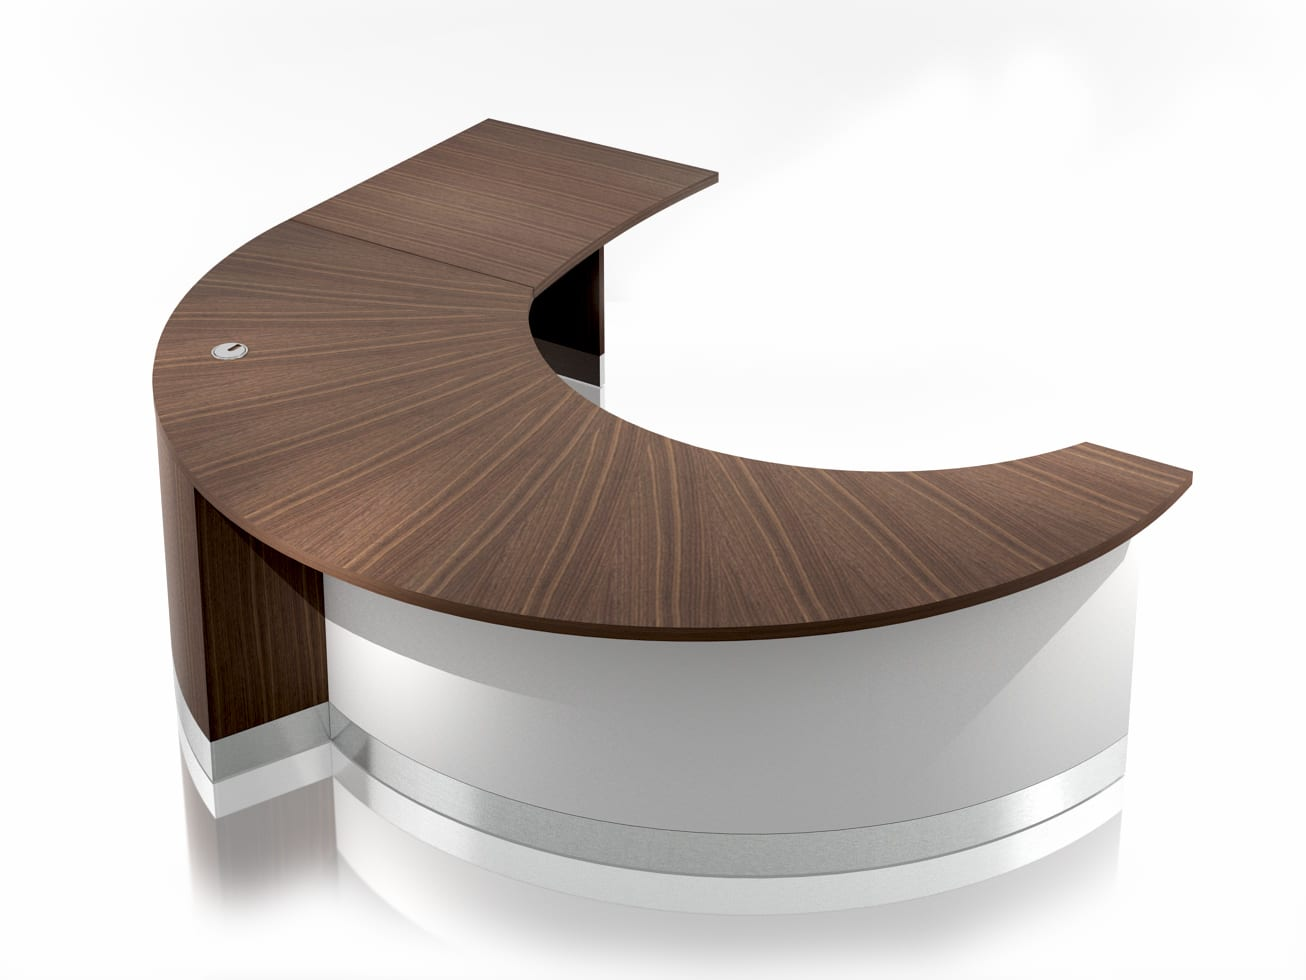 CR0120 – CRESCENT RECEPTION DESK standard & return – View 1A